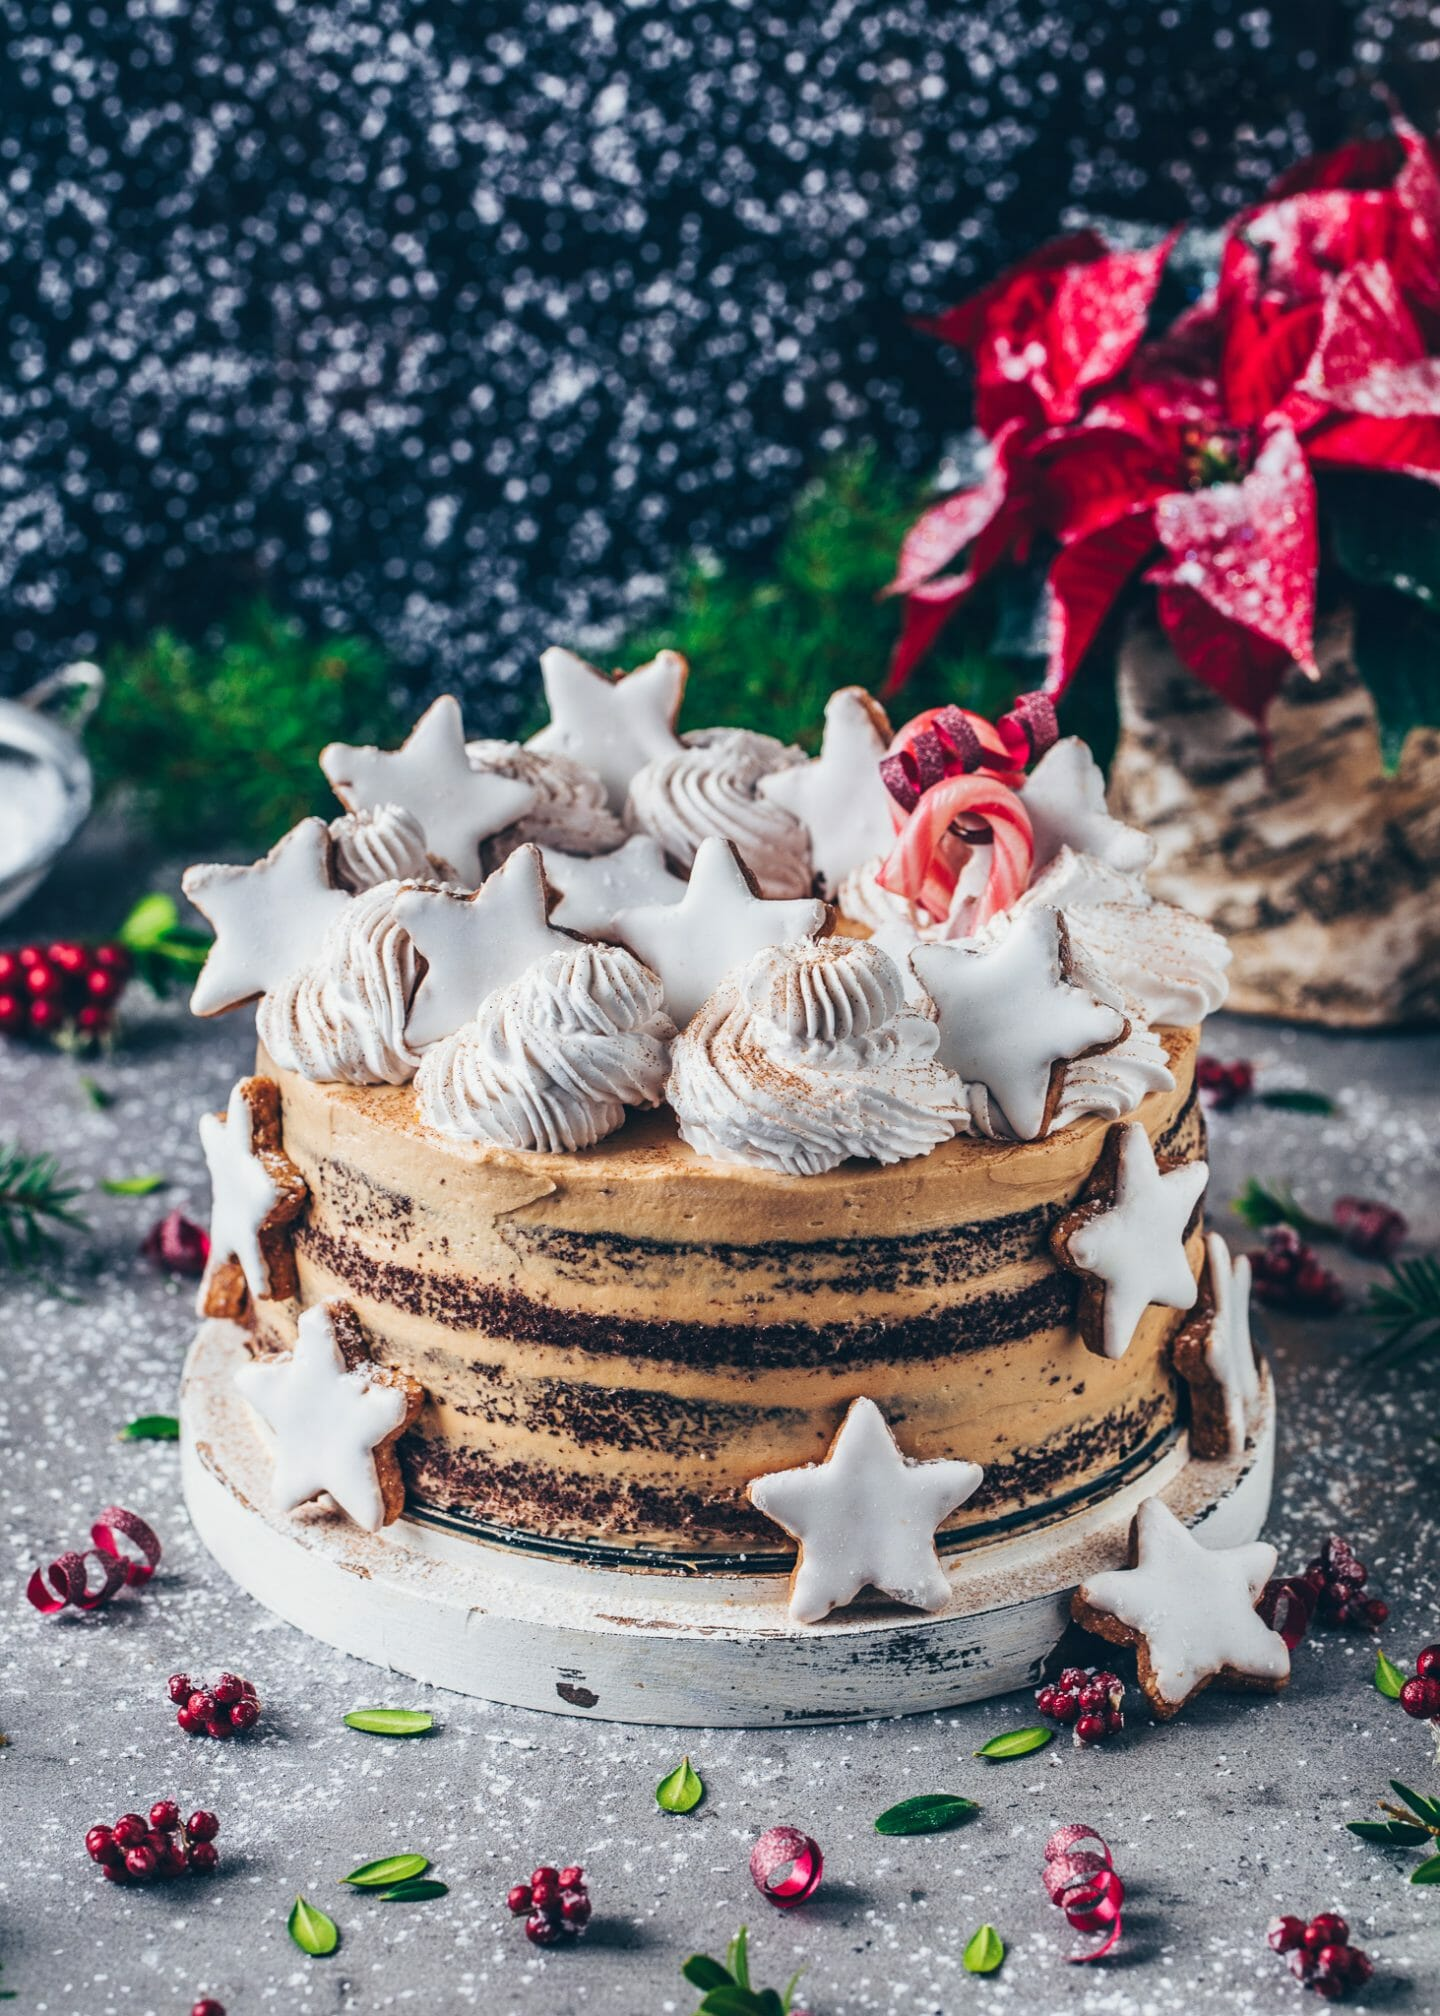 Chocolate Cake with Cookie Butter Speculoos Cream Frosting and Cinnamon Stars